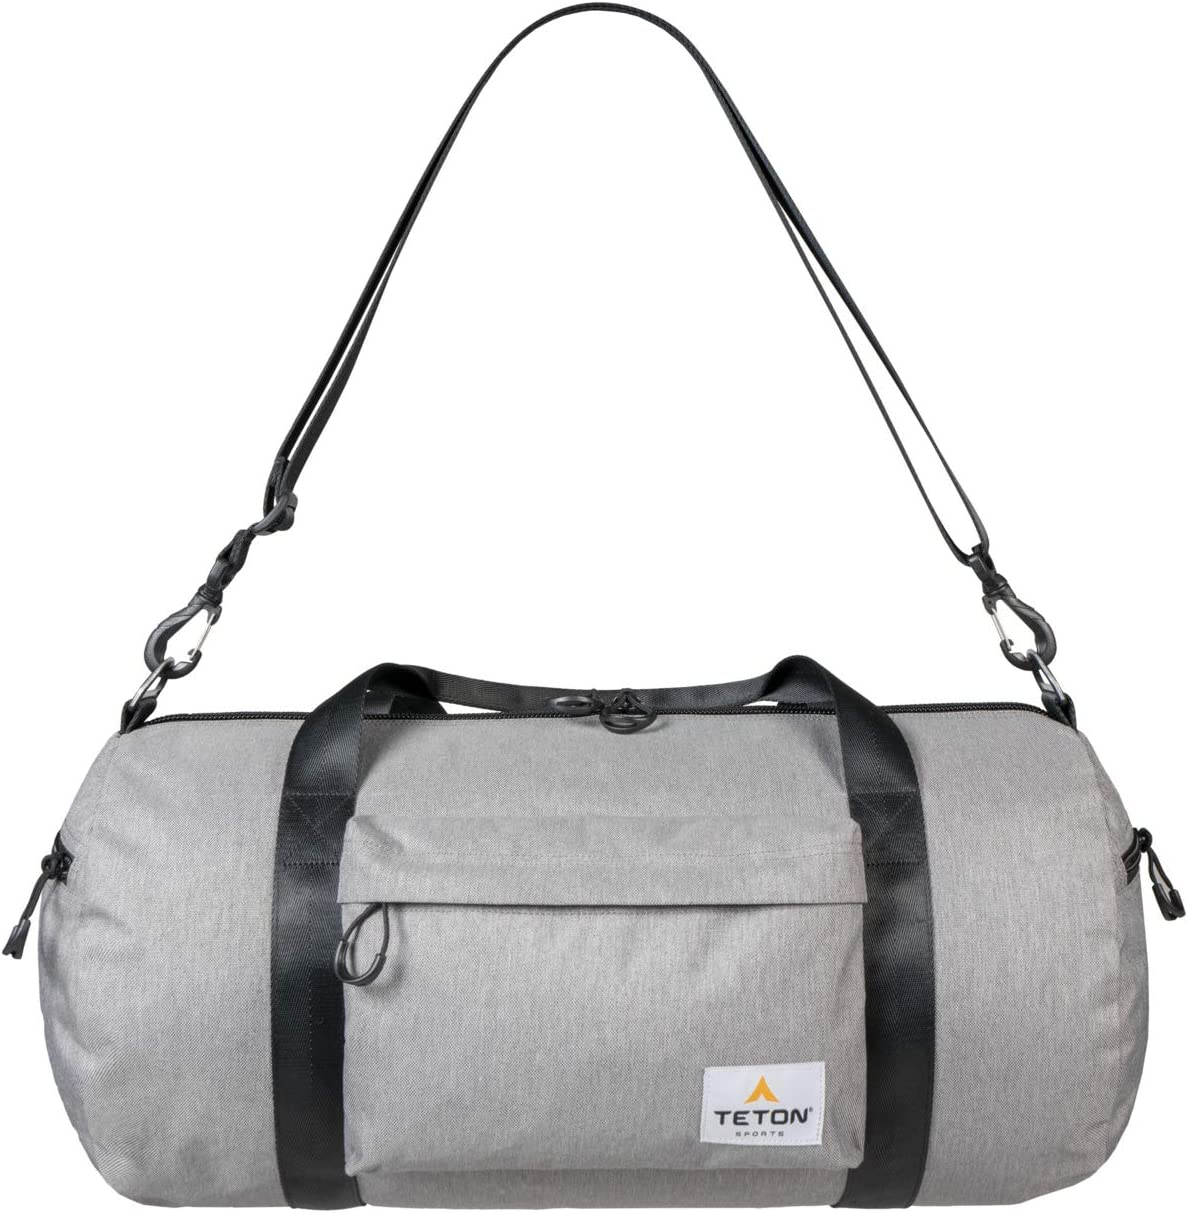 TETON Sports Canvas Duffel Bag Luggage for Travel, the Gym, and Overnight Getaways